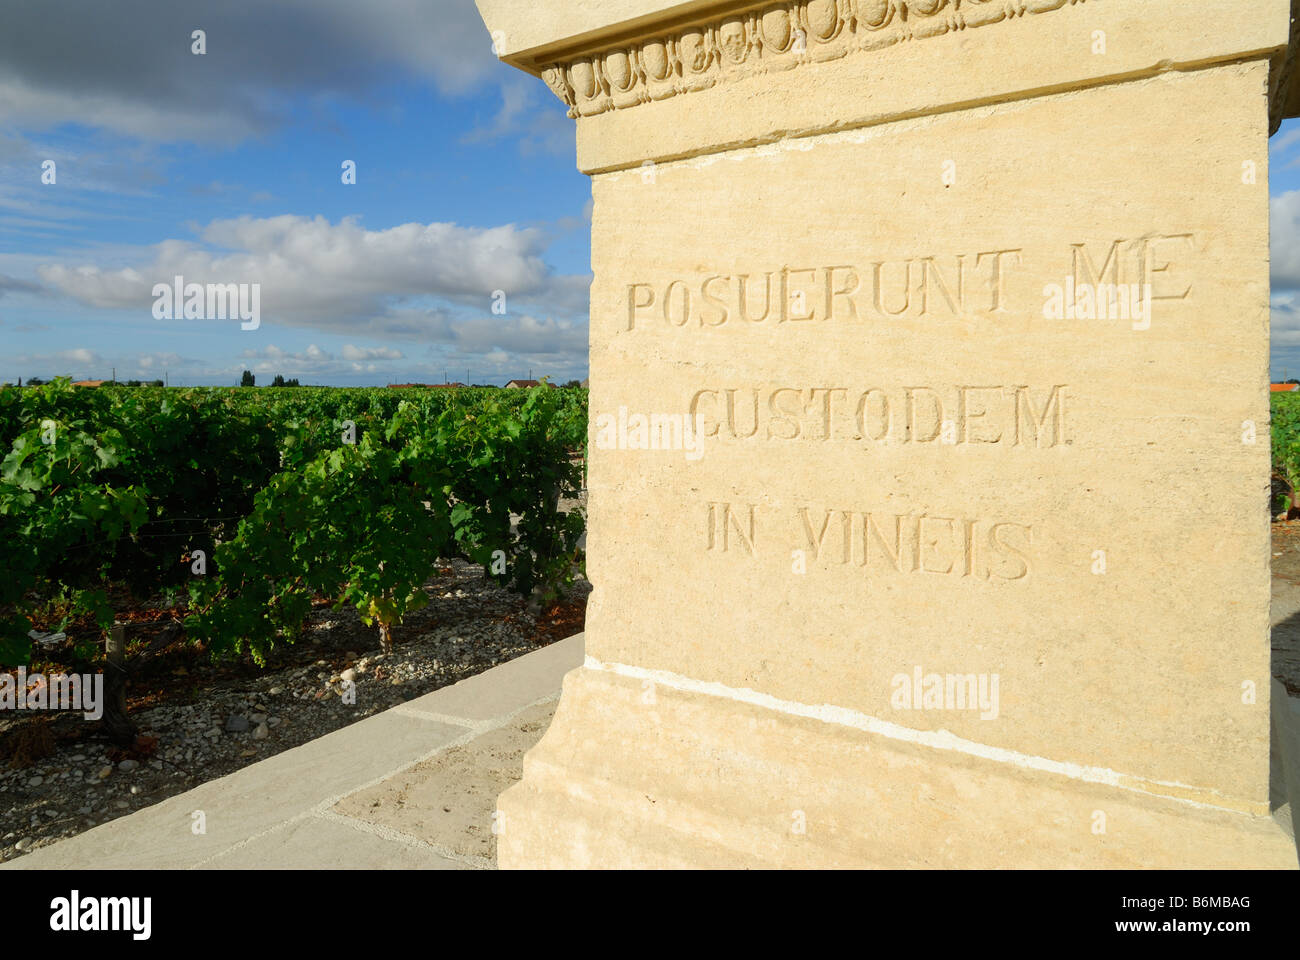 Pauillac France A cross with the latin inscription Posuerent me custodem in vineis stands at the edge of a vineyard - Stock Image